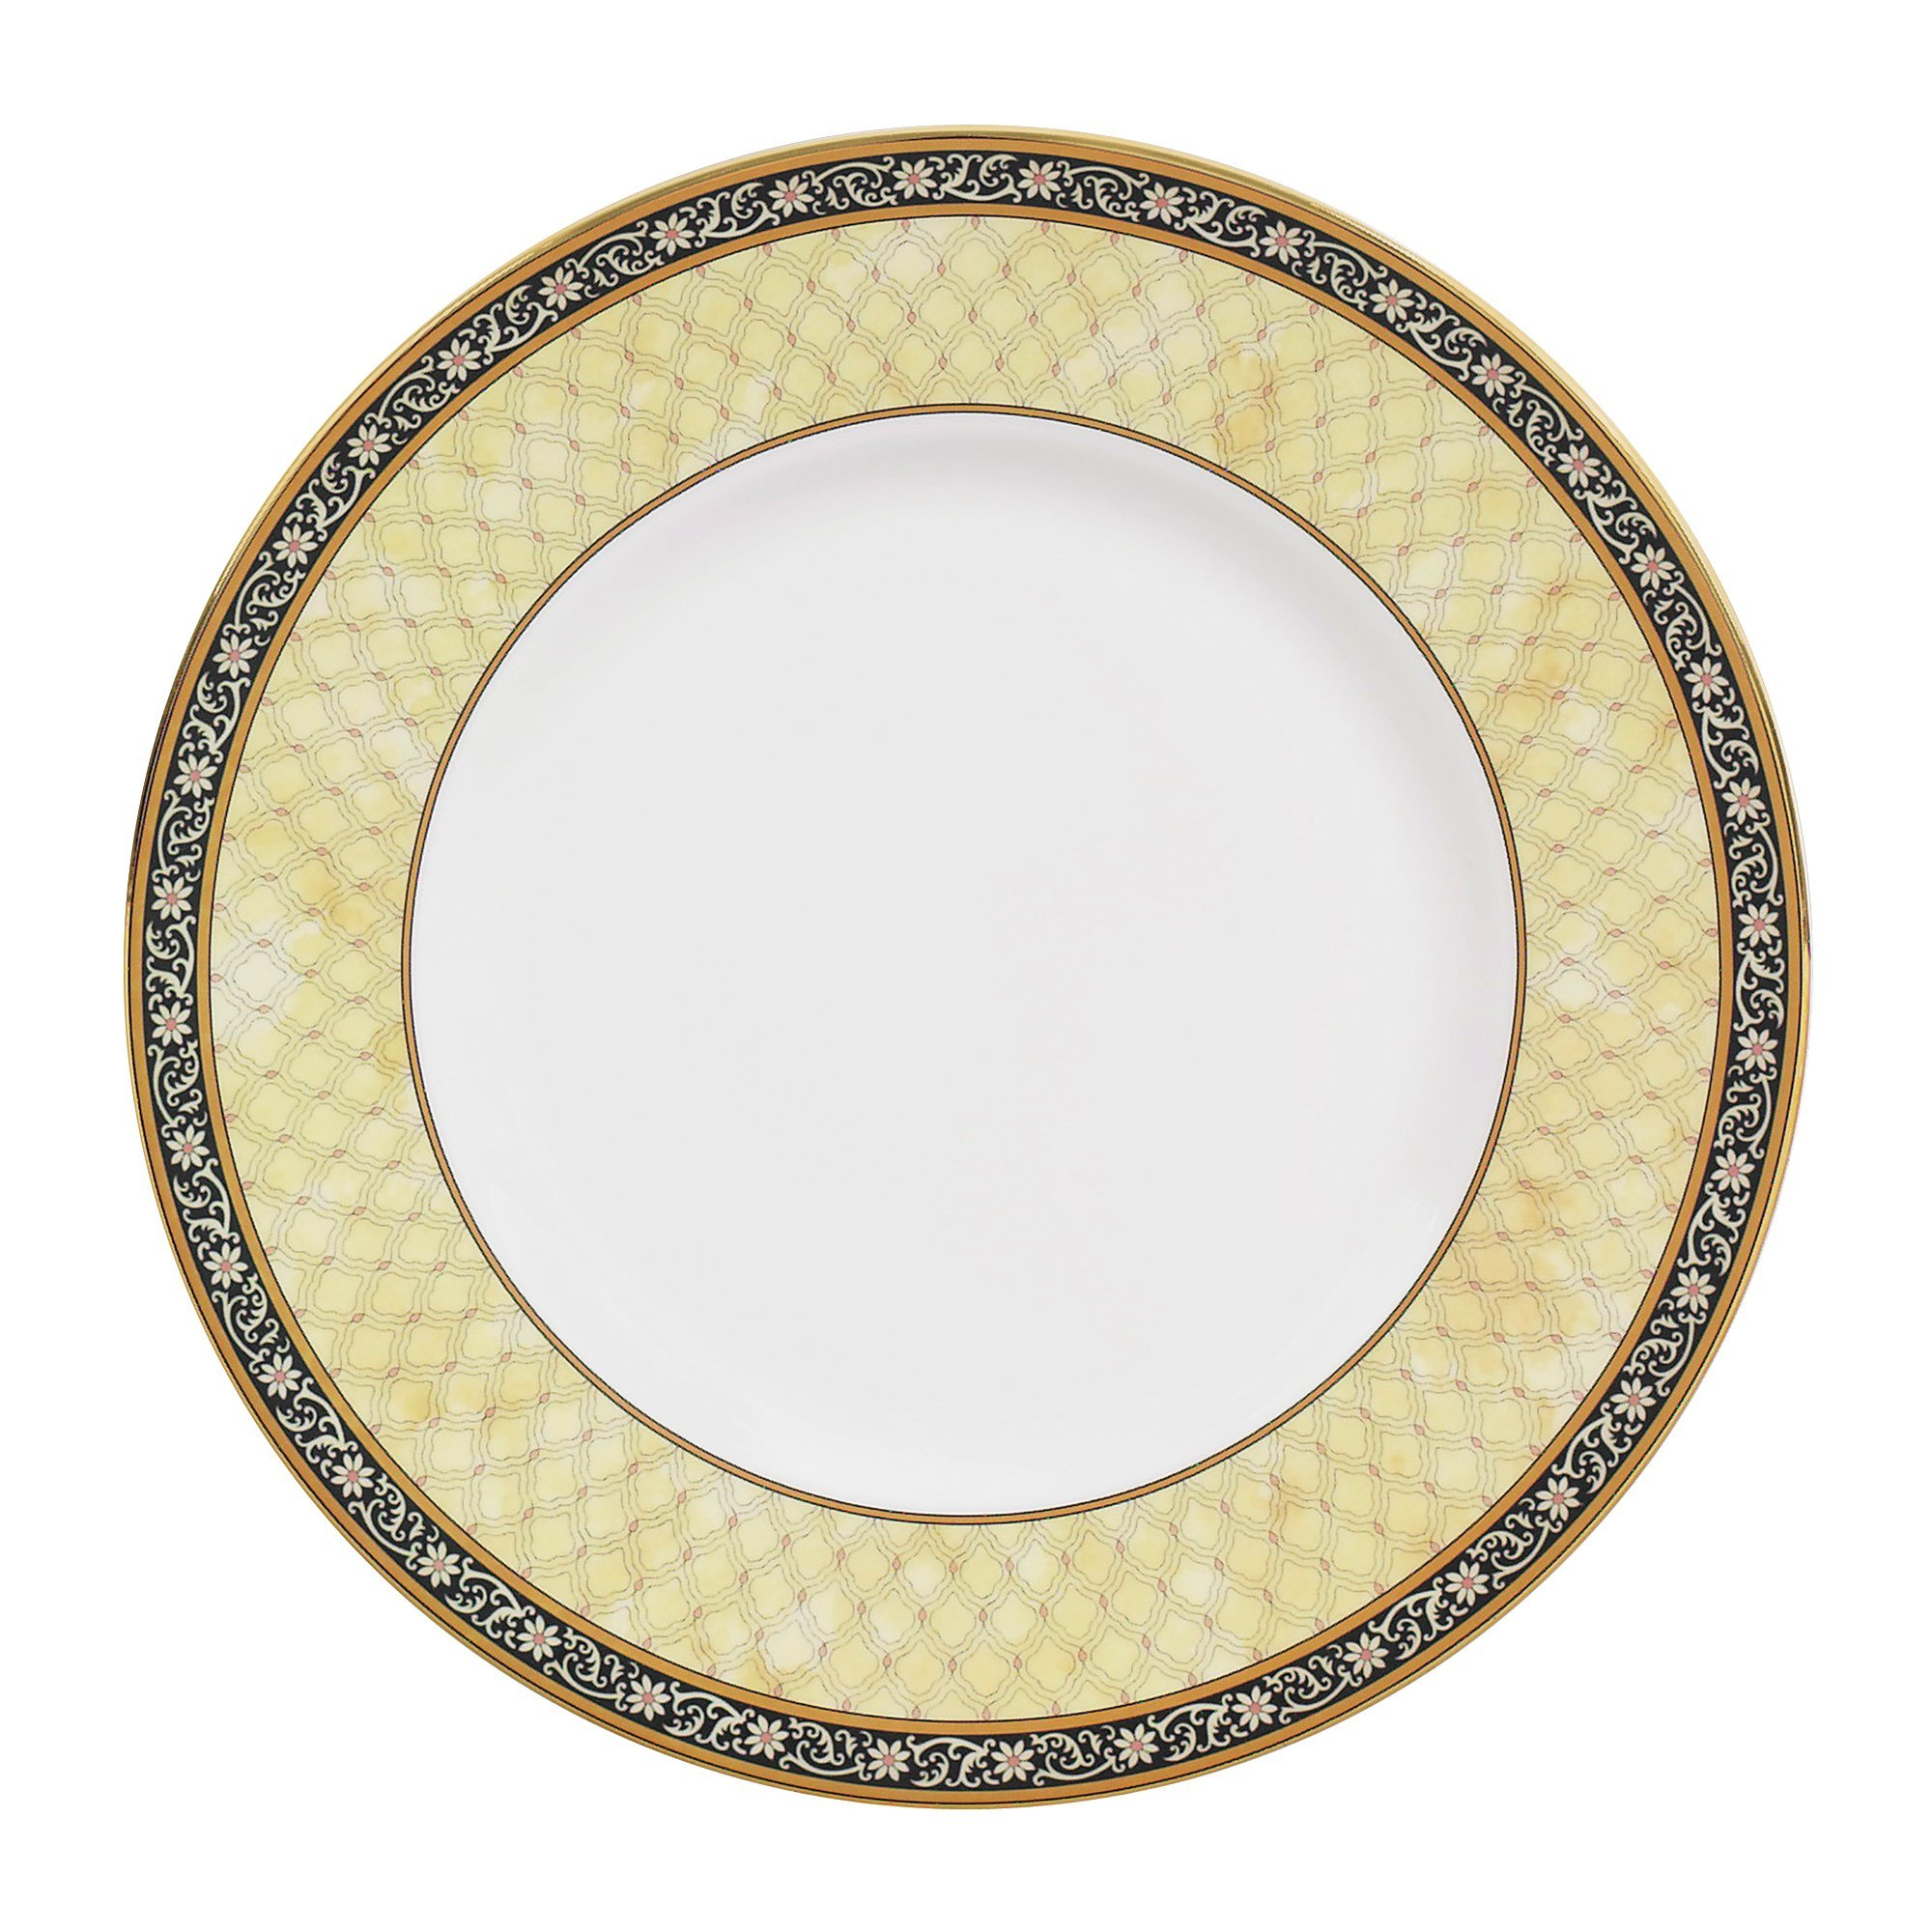 Wedgwood India Accent Plate, 9'', Multicolor